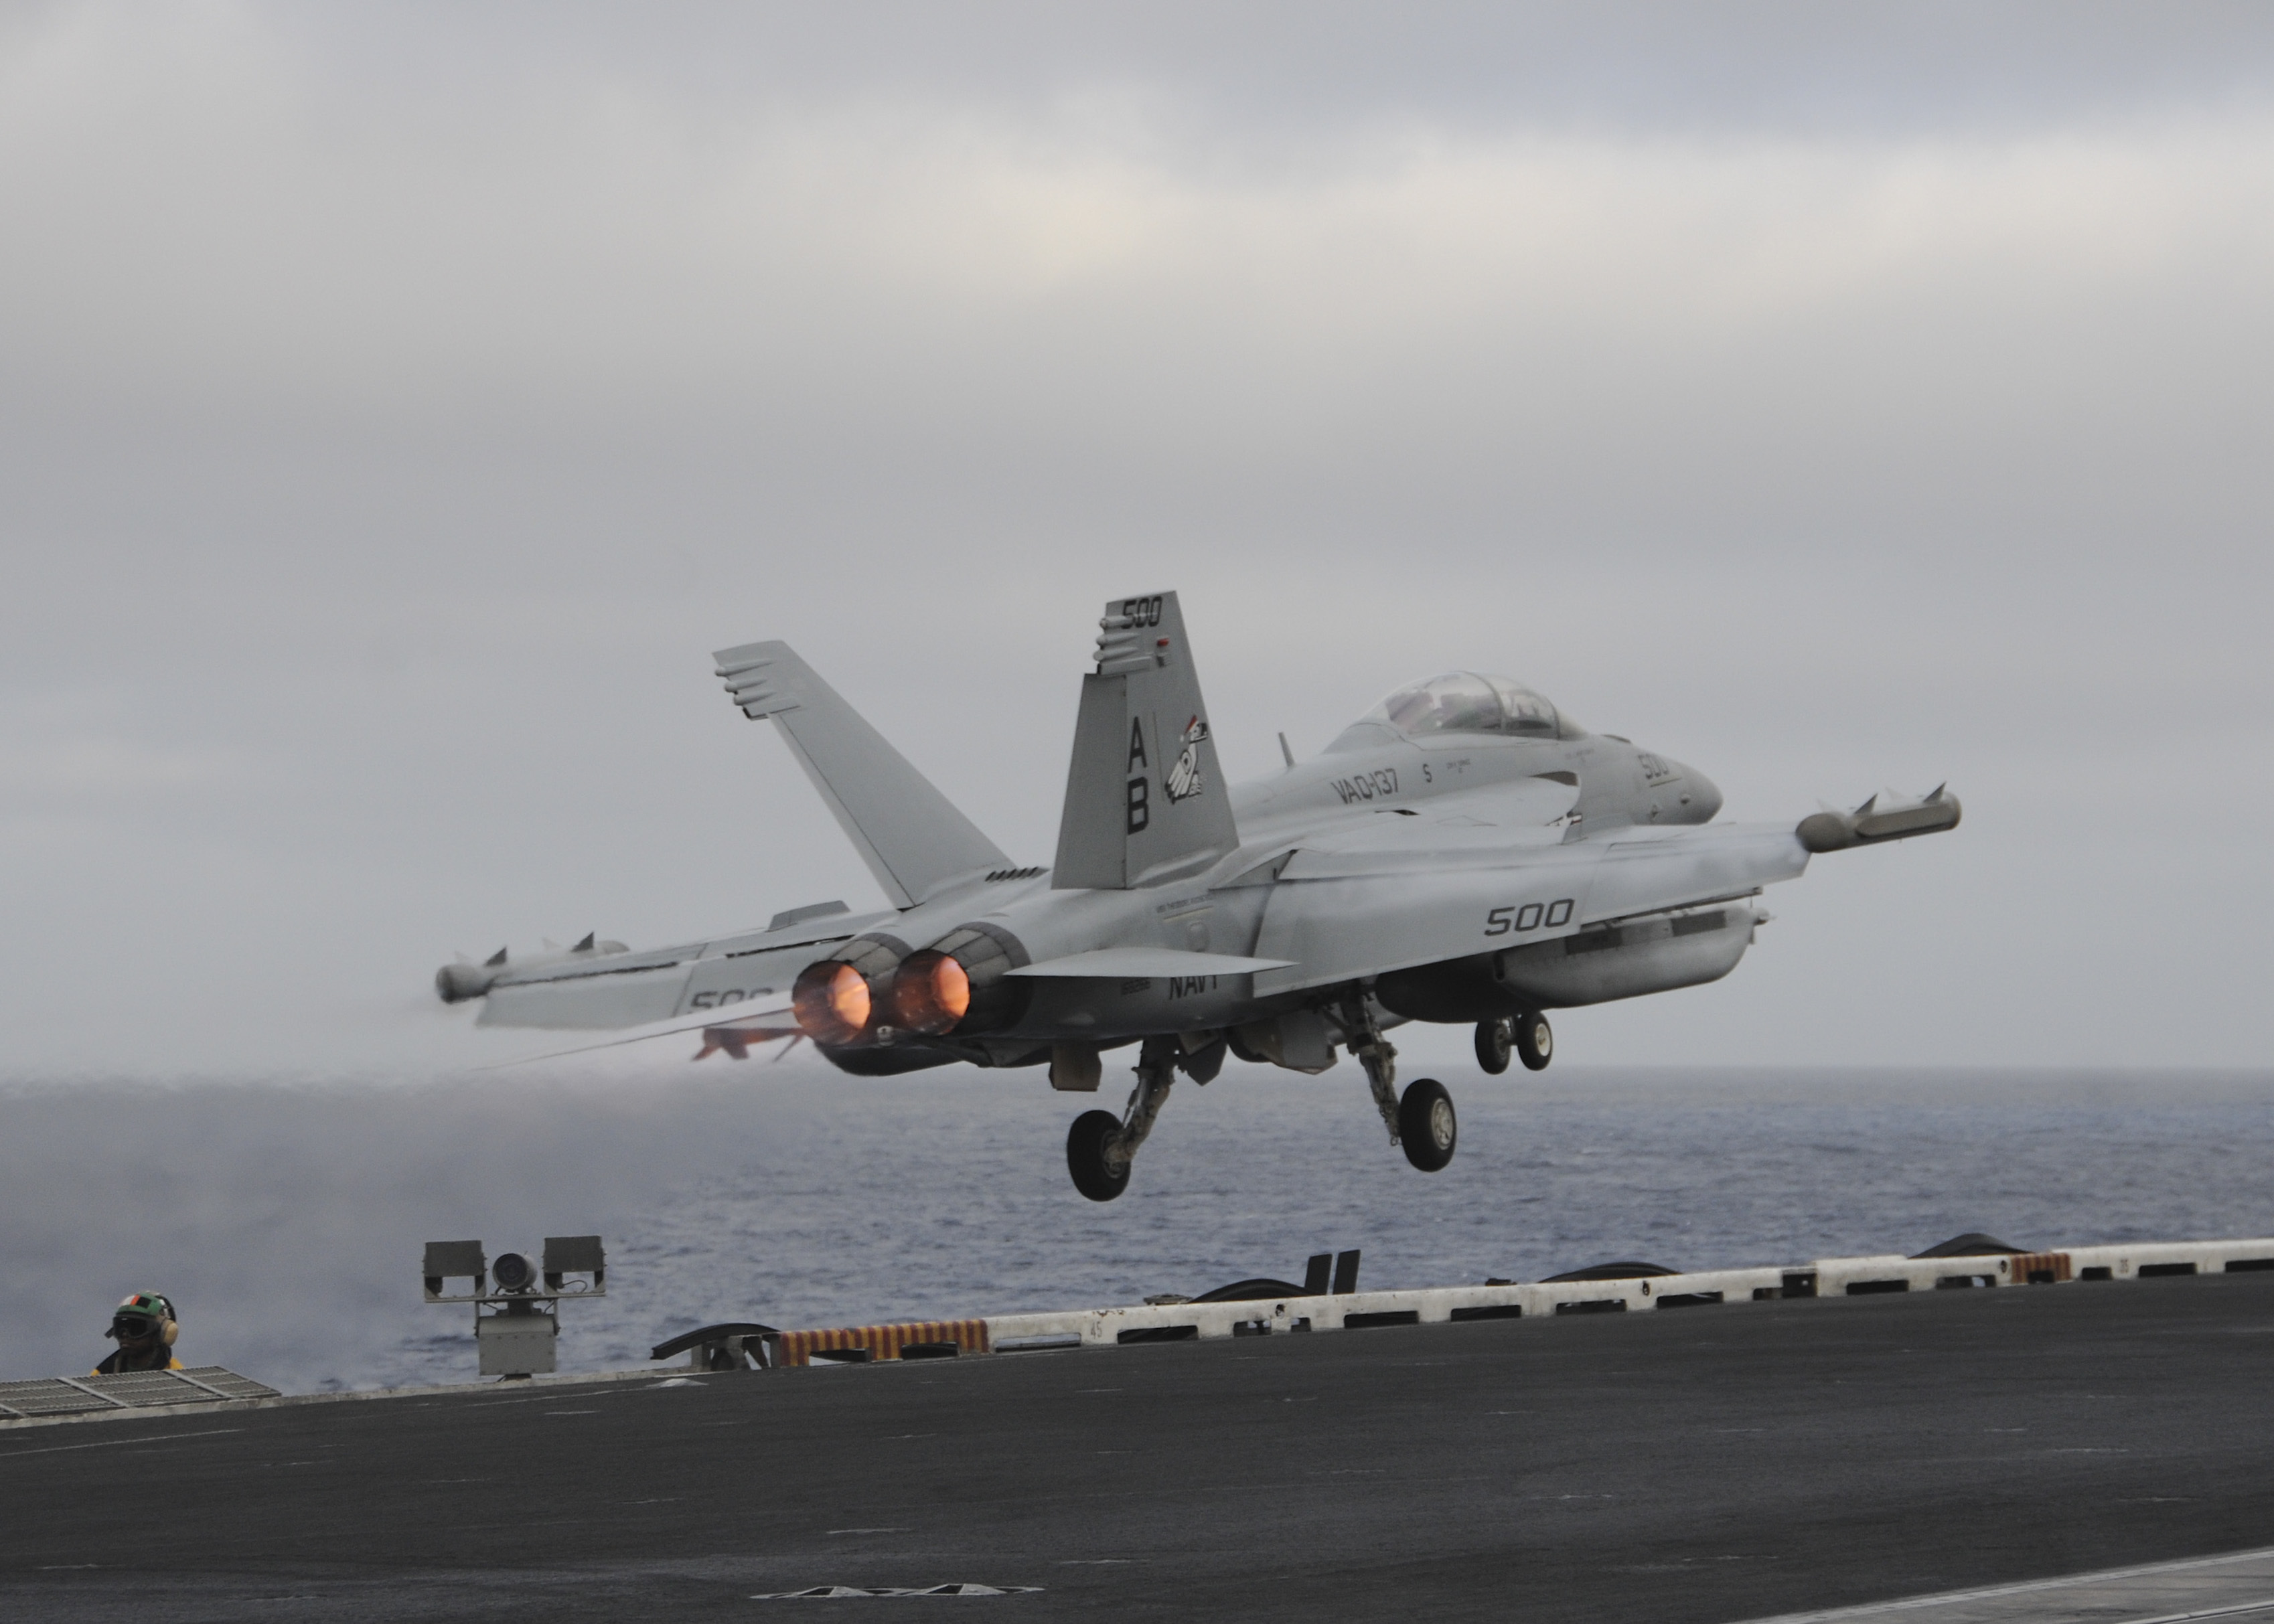 151121-N-NV908-615 PACIFIC OCEAN (Nov. 21, 2015) – An E/A-18G Growler, assigned to the Rooks of Electronic Attack Squadron (VAQ) 137, launches off the flight deck of the aircraft carrier USS Theodore Roosevelt (CVN 71). The Rooks,  along with all Carrier Air Wing One aircraft, are on their way home after completing an eight-month deployment as part of the Theodore Roosevelt Carrier Strike Group.  Theodore Roosevelt is operating in the U.S. 3rd Fleet area of operations as part of a worldwide deployment en route to its new homeport in San Diego to complete a three-carrier homeport shift. (U.S. Navy Photo by Mass Communication Specialist Seaman Chad M. Trudeau/Released)